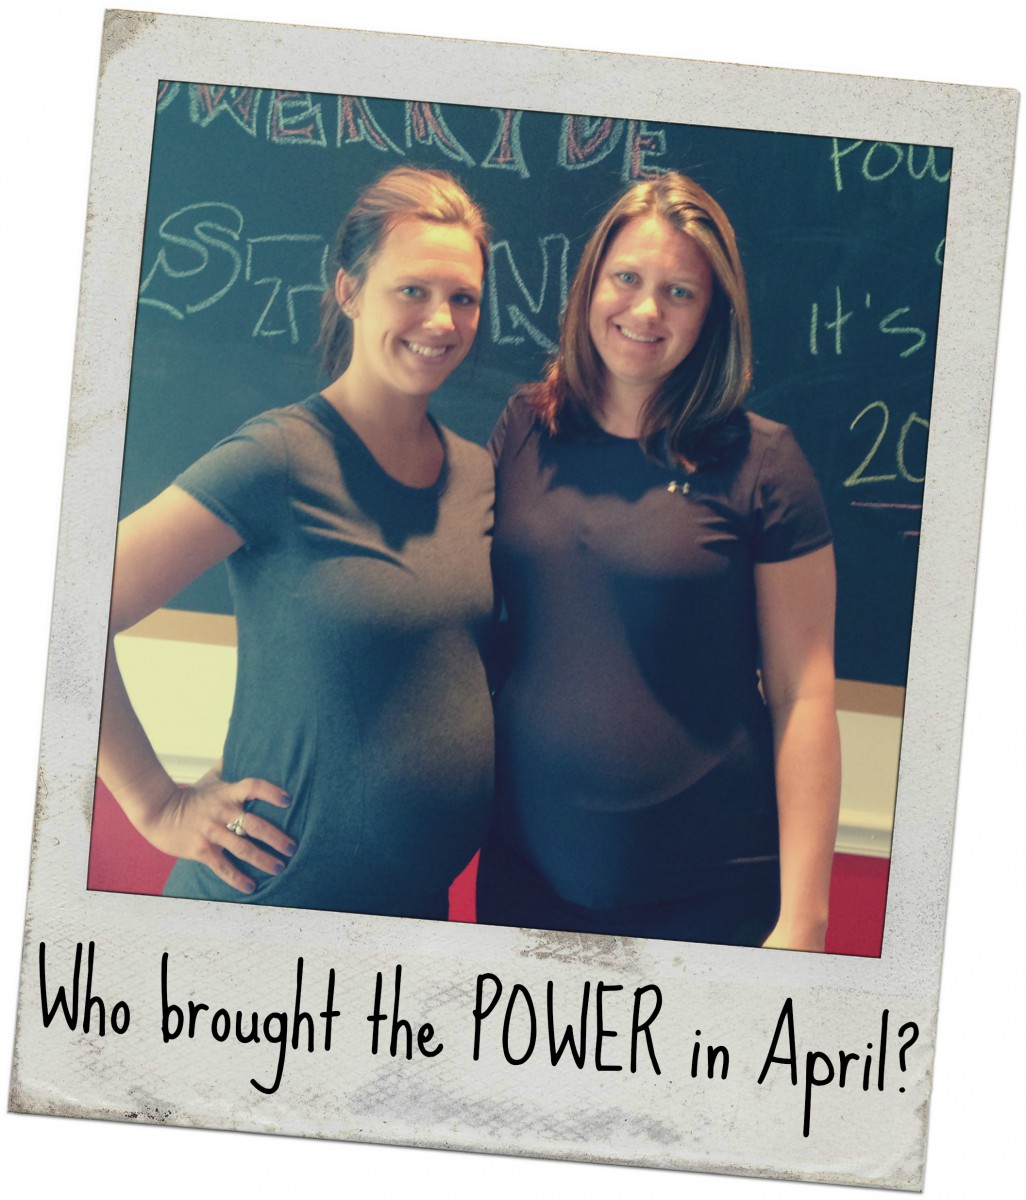 Who Brought the POWER in April?